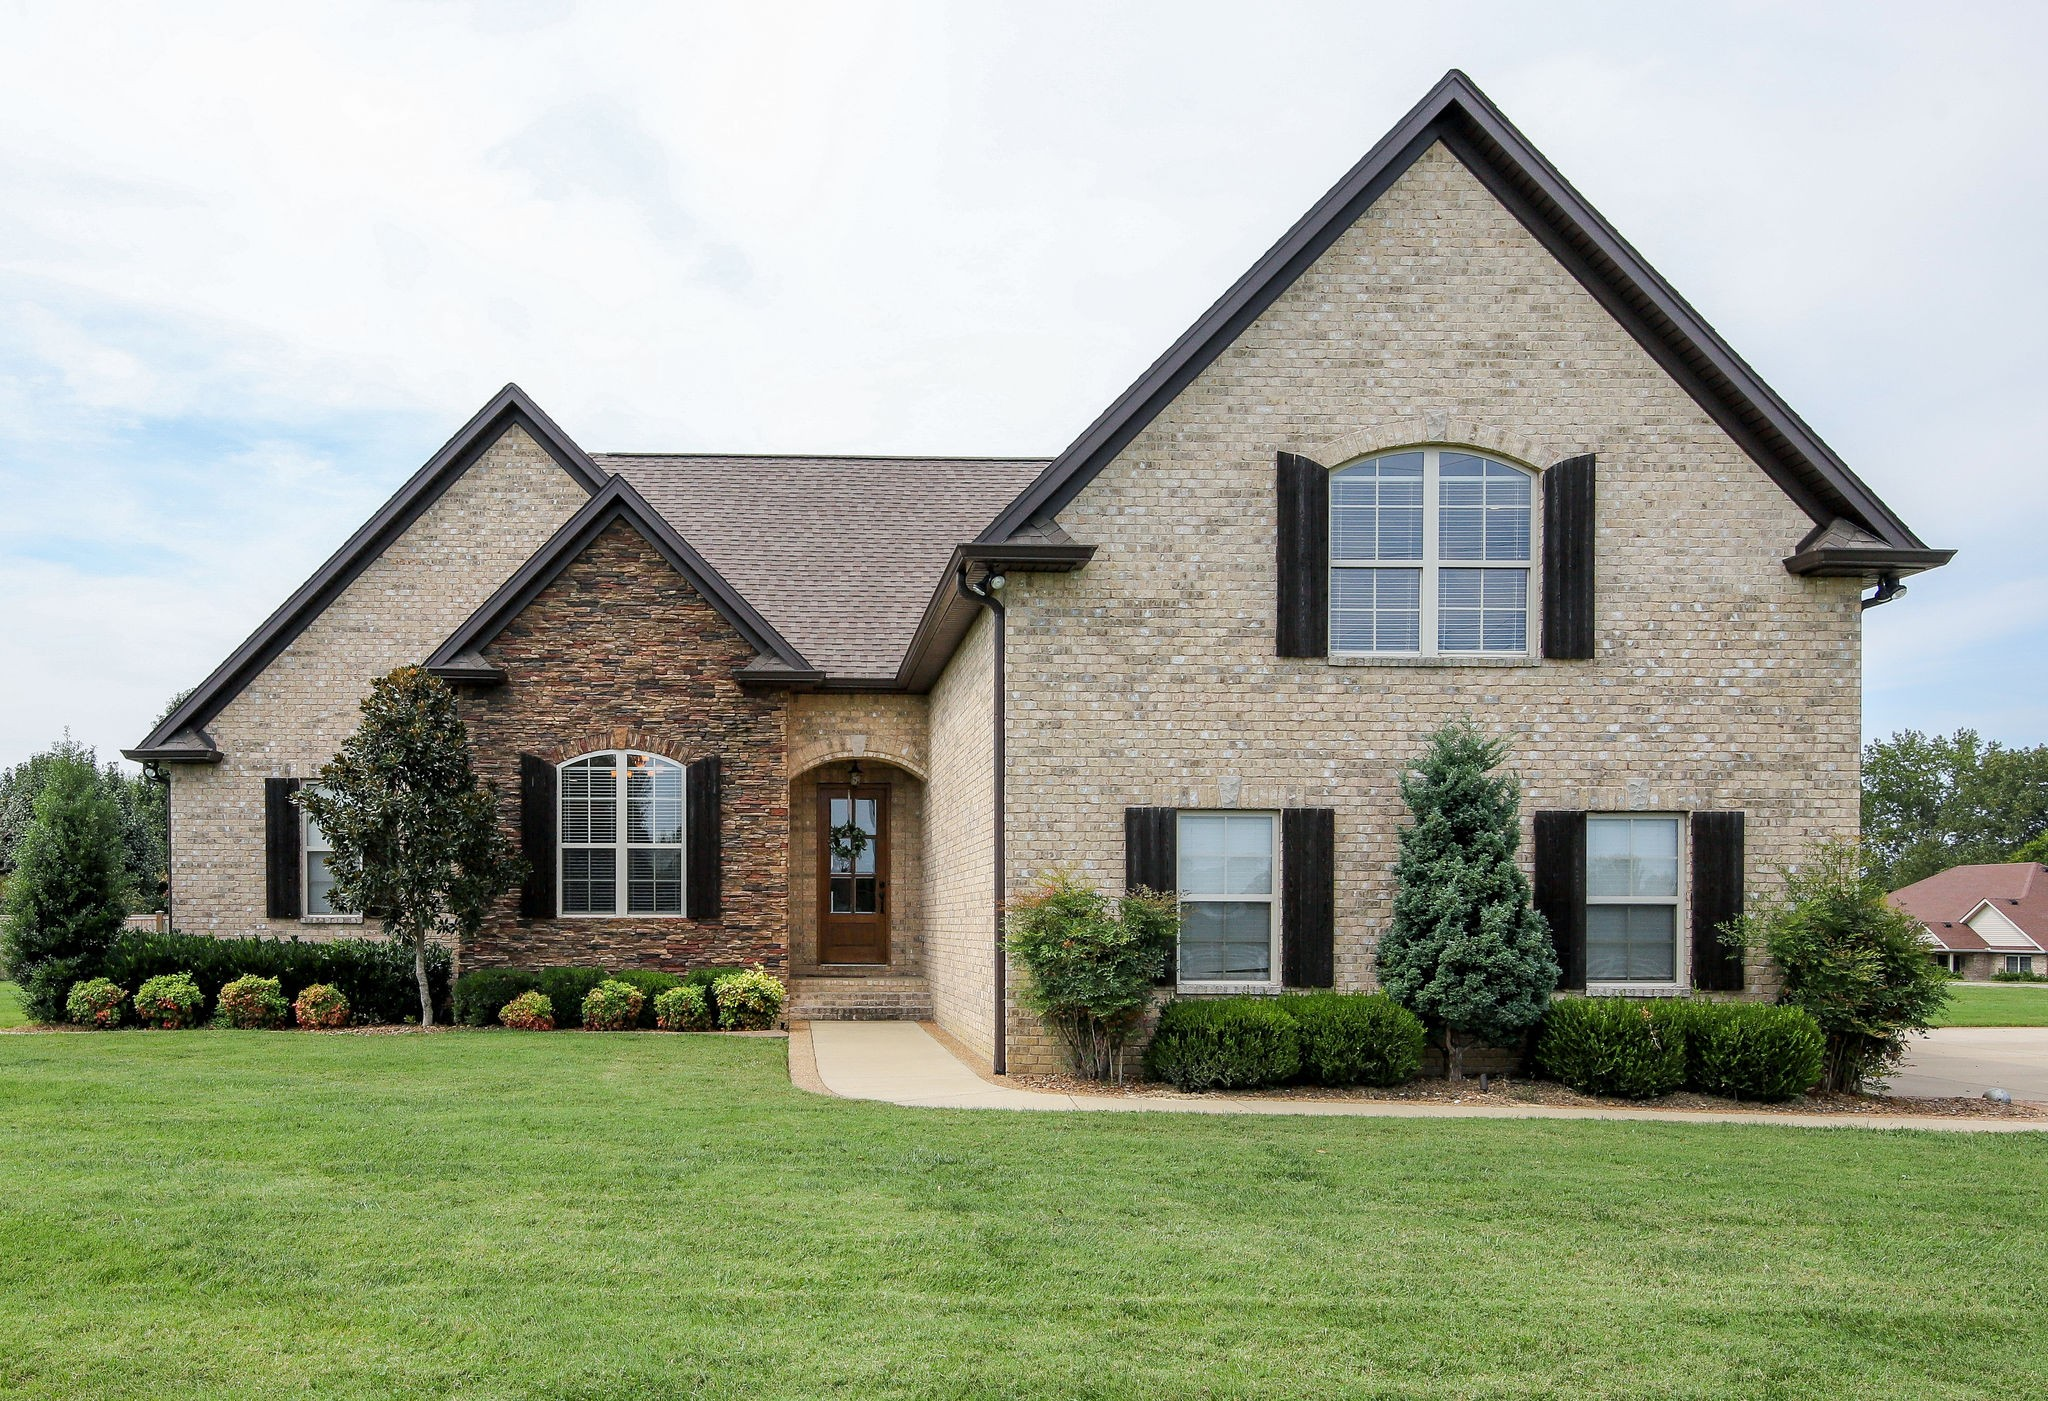 204 Allen Dr, Greenbrier, TN 37073 - Greenbrier, TN real estate listing